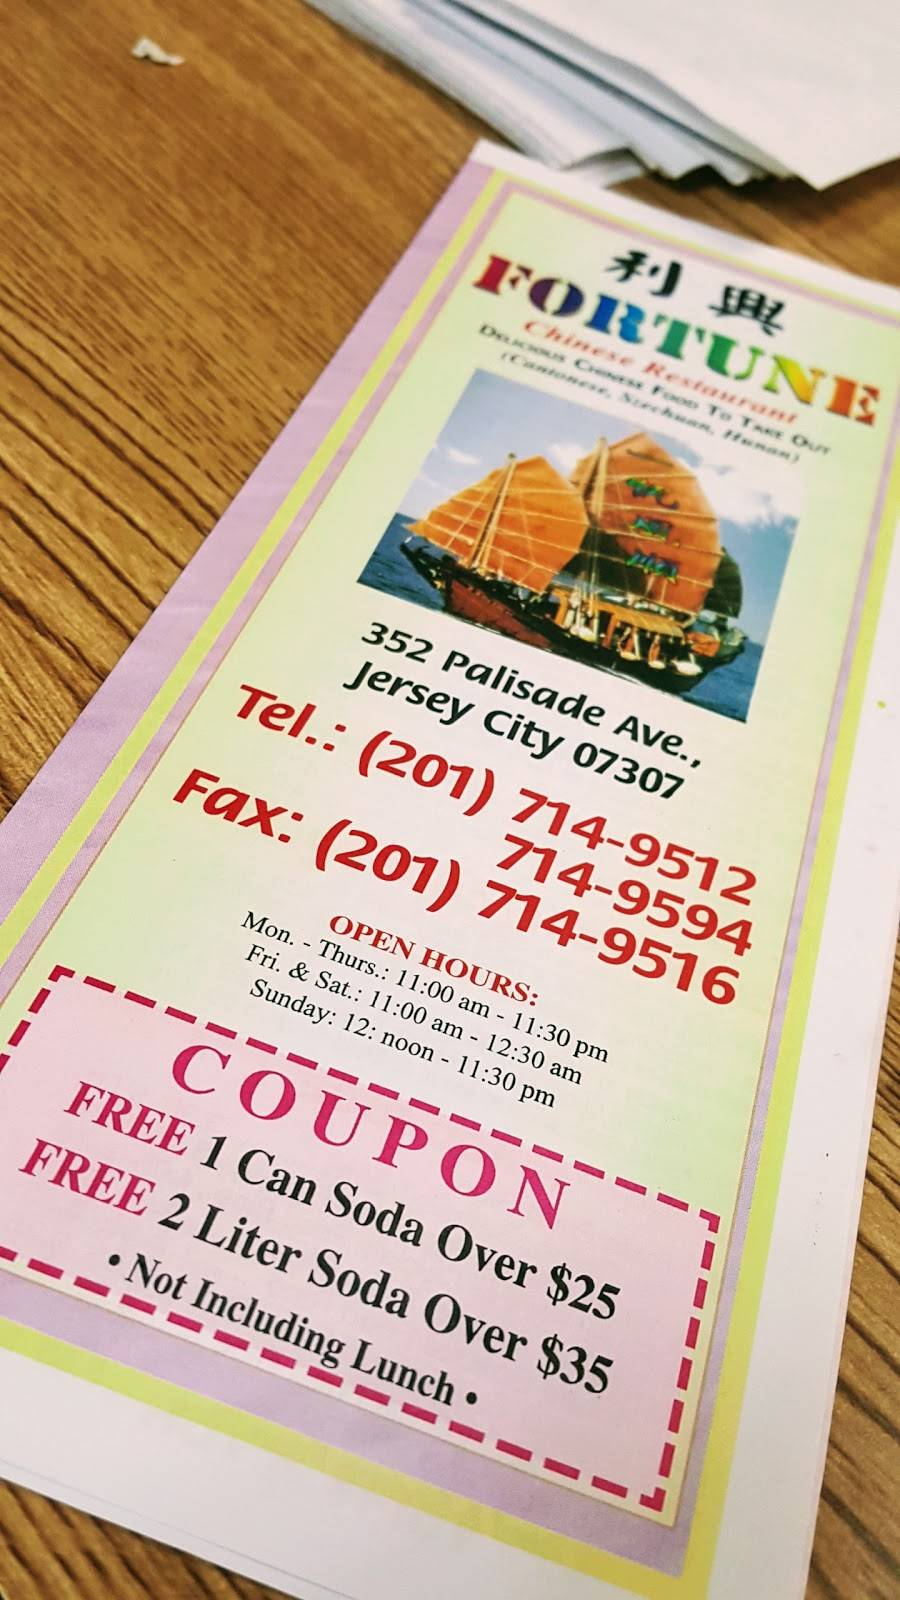 Fortune | restaurant | 352 Palisade Ave A, Jersey City, NJ 07307, USA | 2017149512 OR +1 201-714-9512